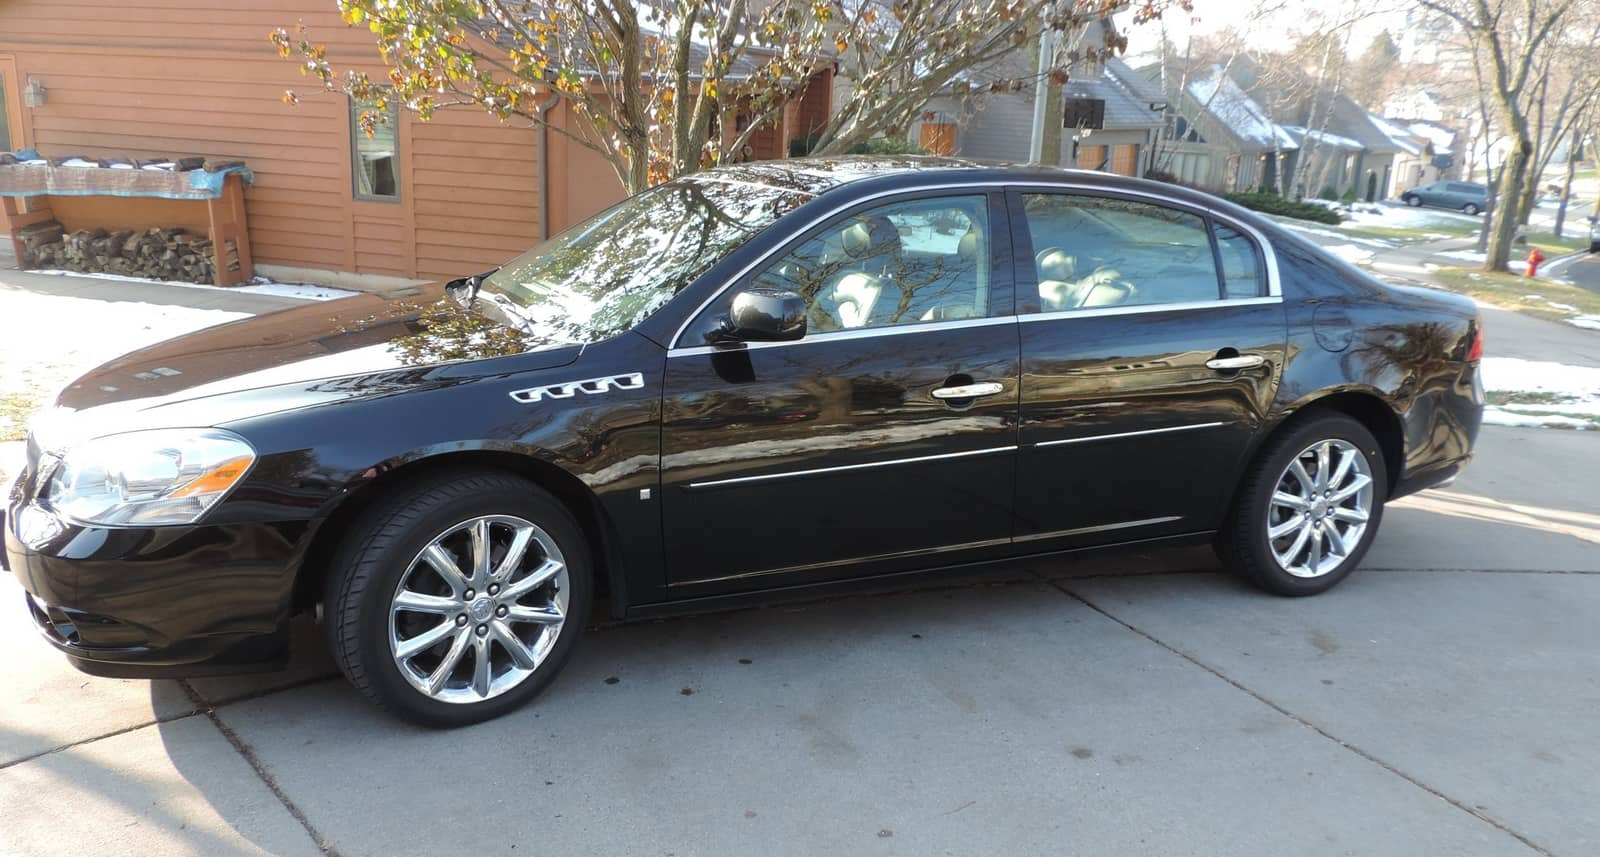 Lists of cars under 5000 include the Buick Lucerne